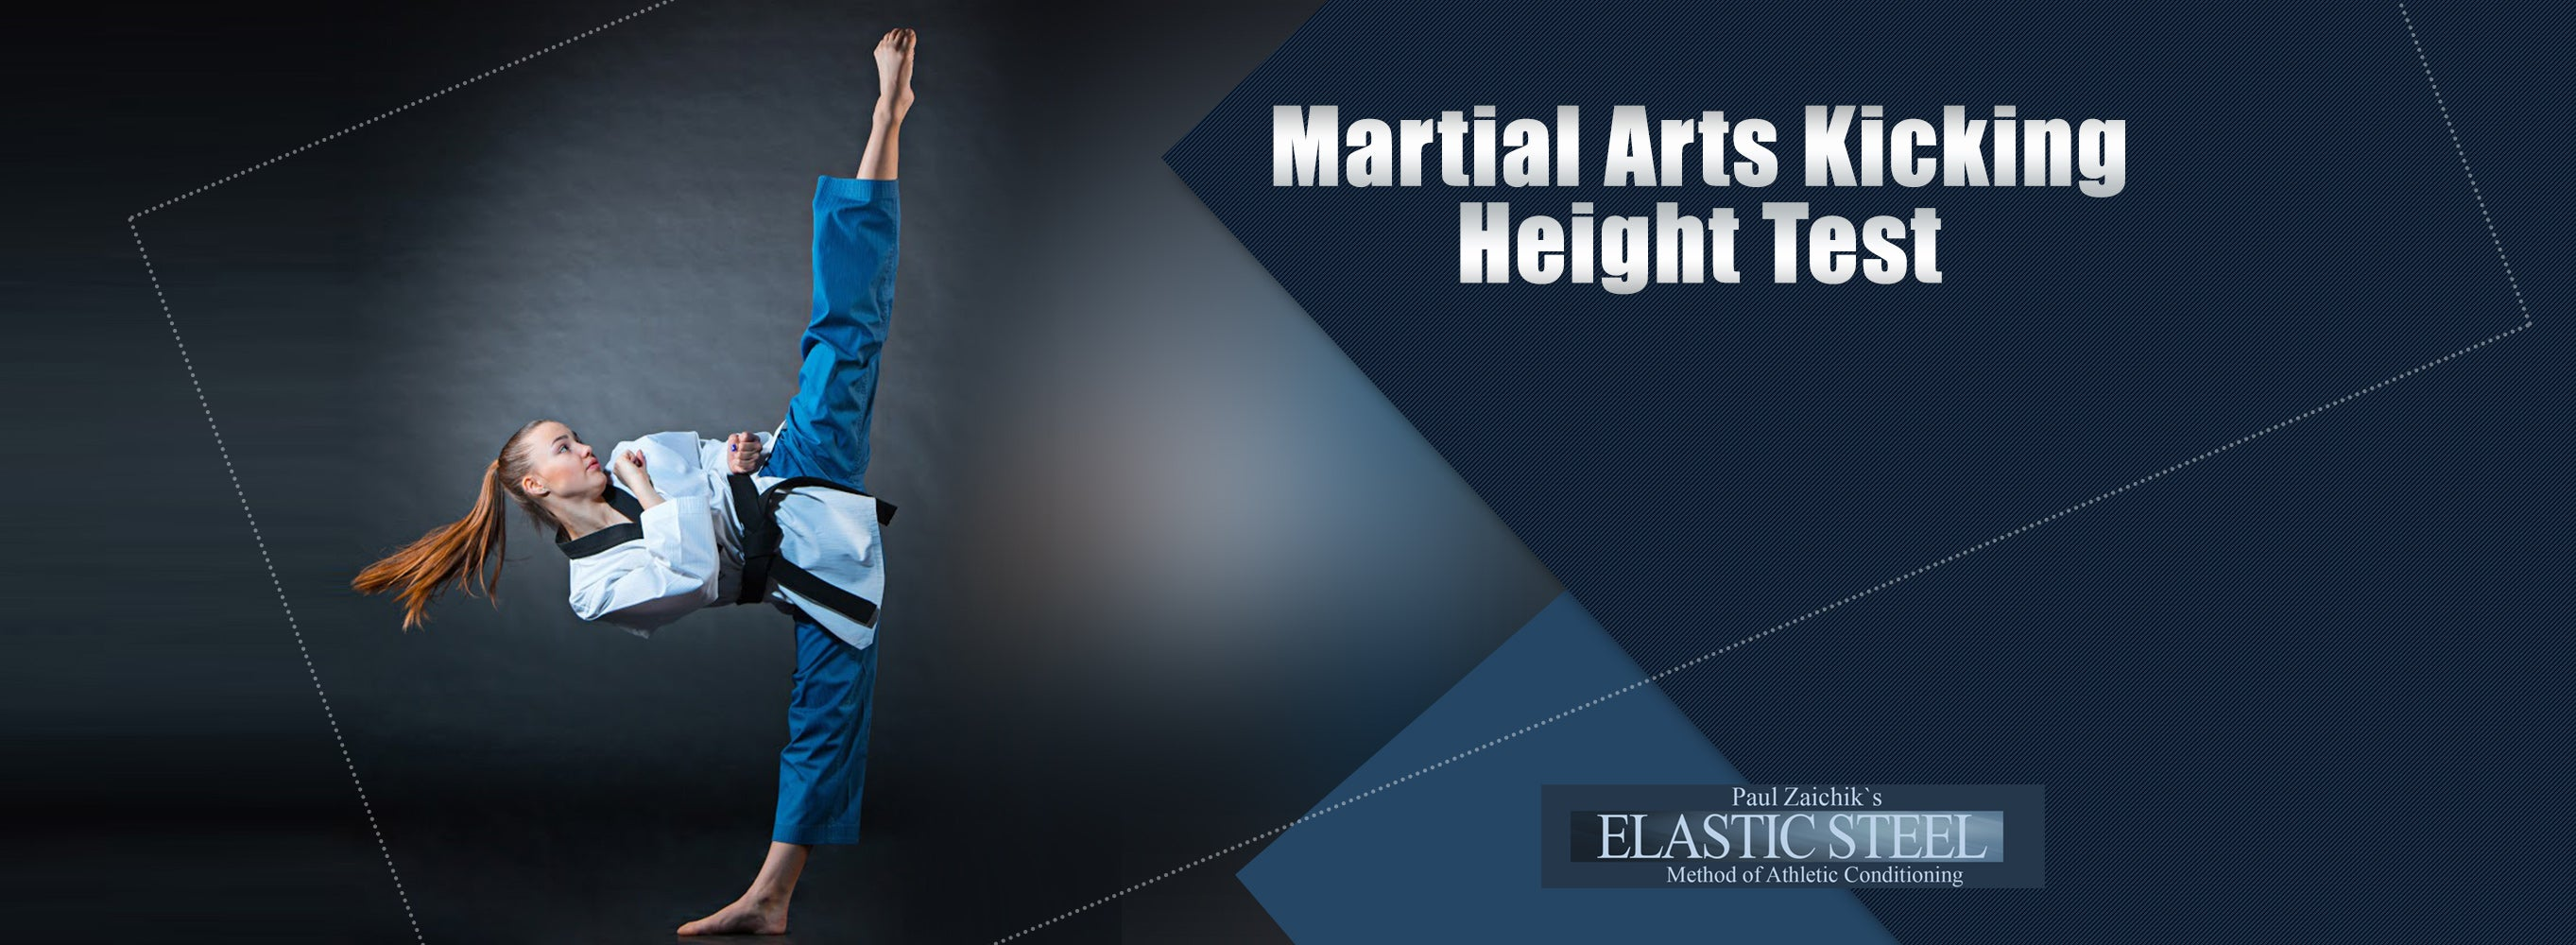 Martial Arts Kicking Height Test